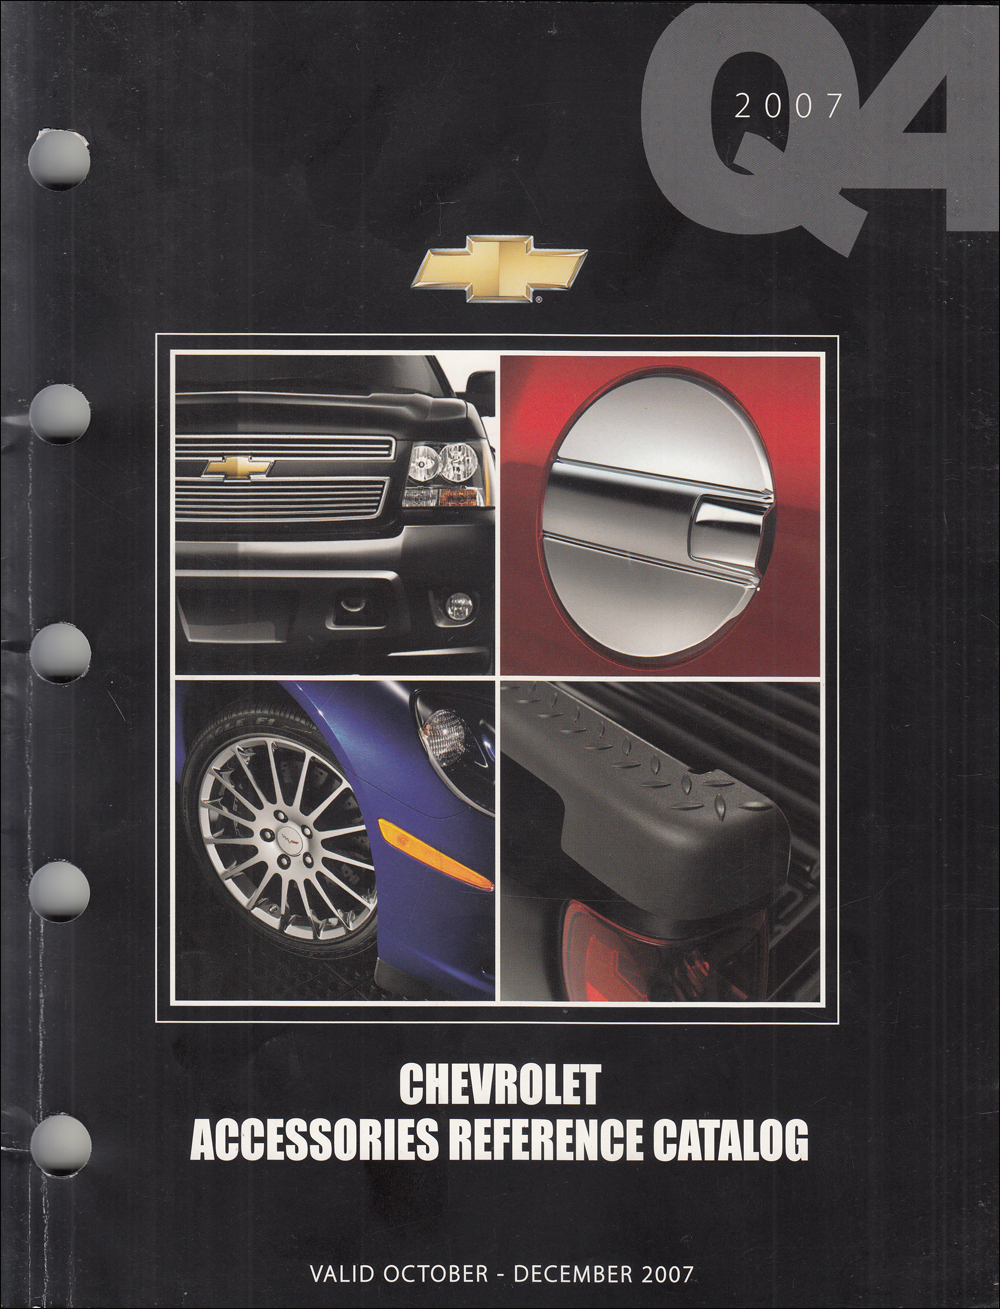 2008 Chevy Aveo Pontiac Wave Repair Shop Manual Original 2 Volume Set 2007 Wiring Diagram Chevrolet Dealer Installed Accessory Album Q4